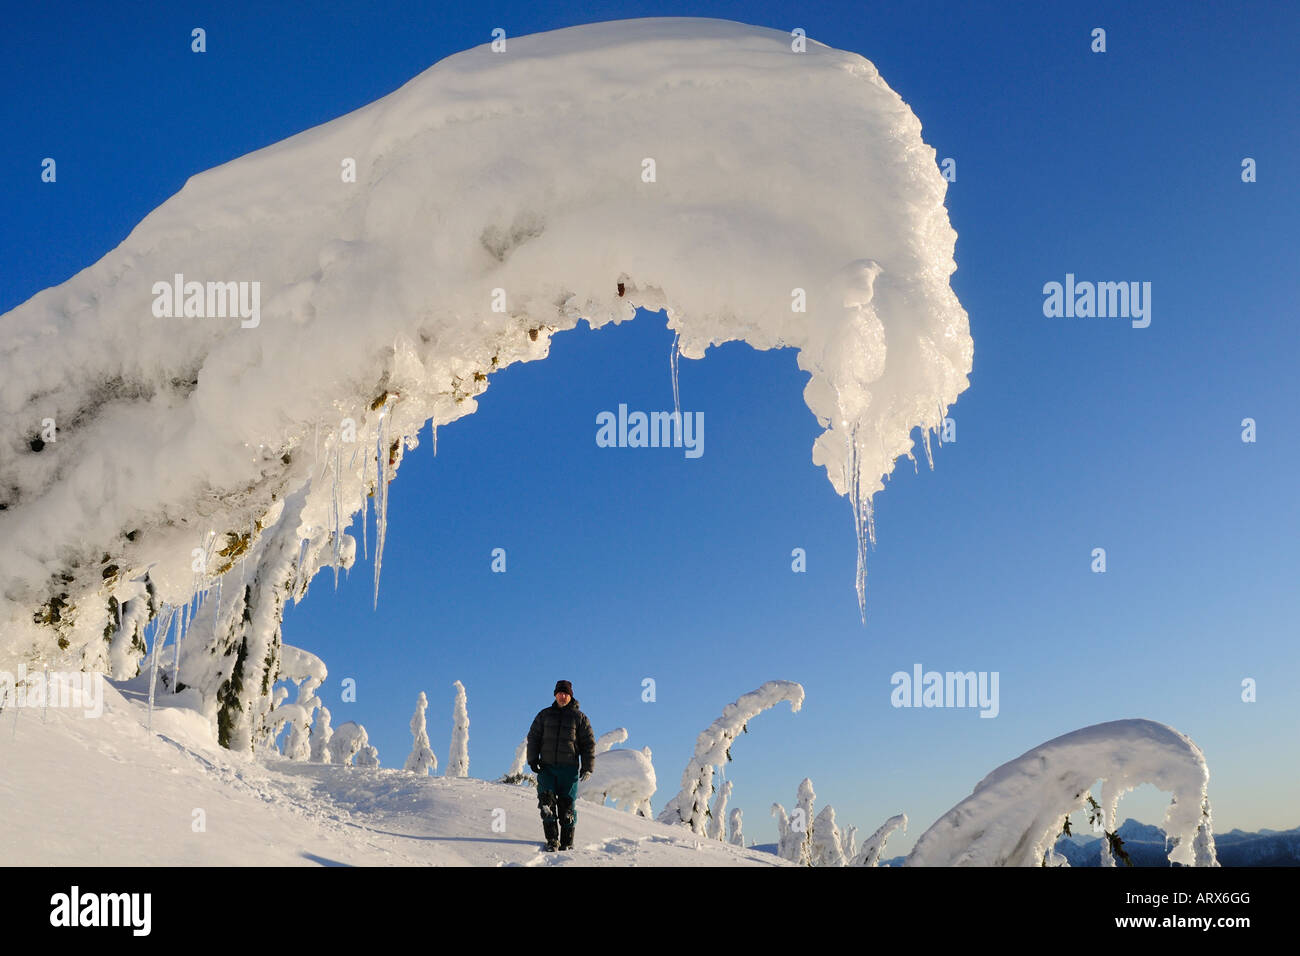 Michael Wheatley snow shoeing Winter Mount Seymour Provincial Park North Vancouver British Columbia - Stock Image